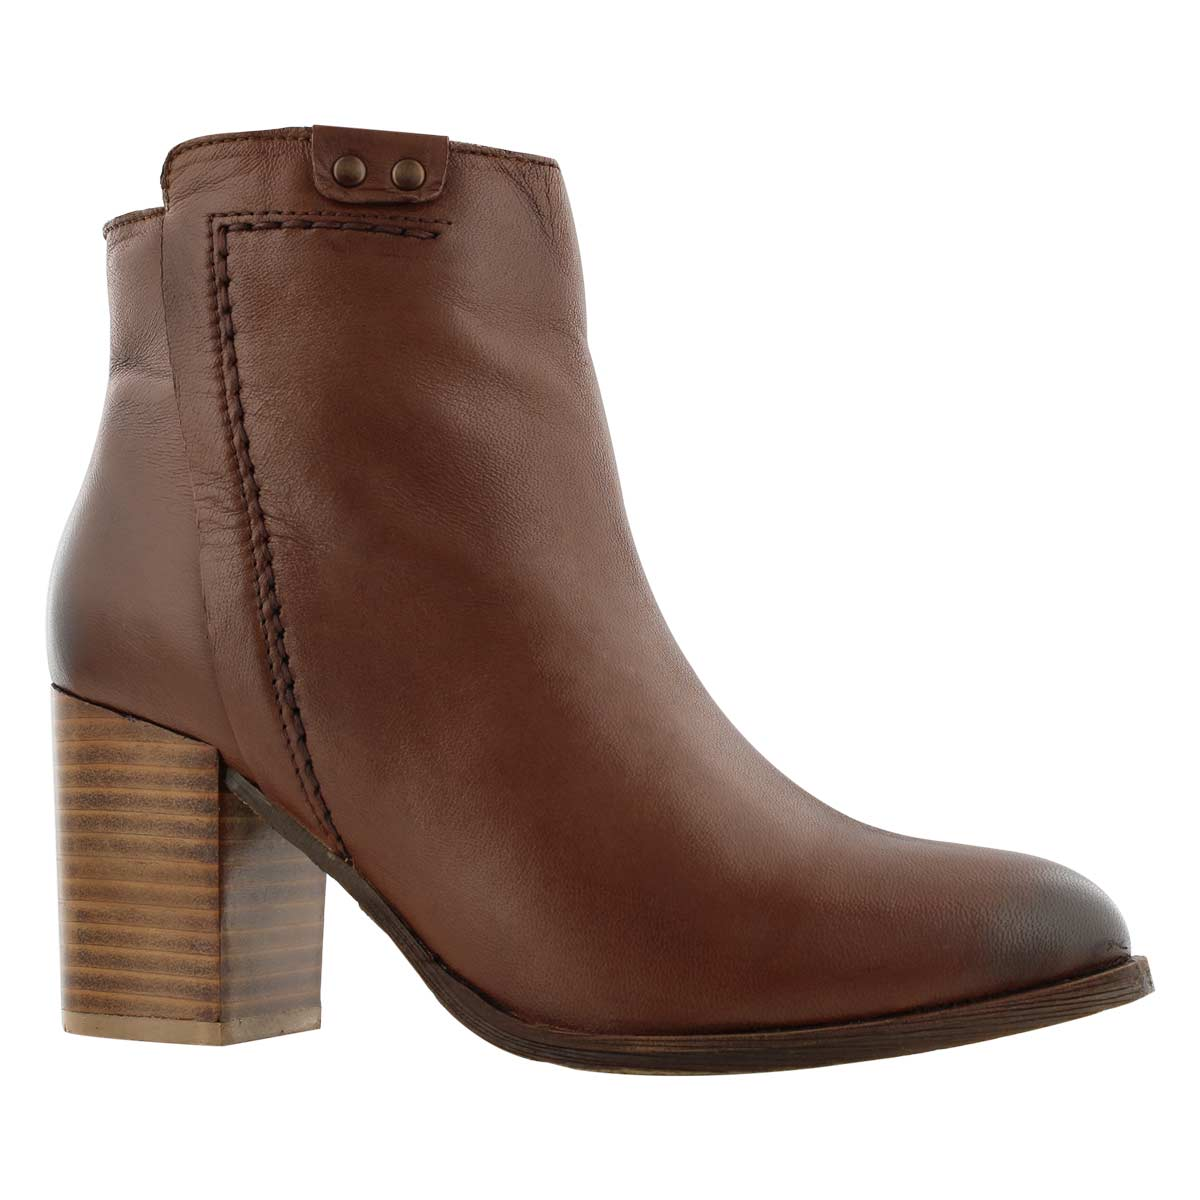 Lds Dacia tan ankle bootie